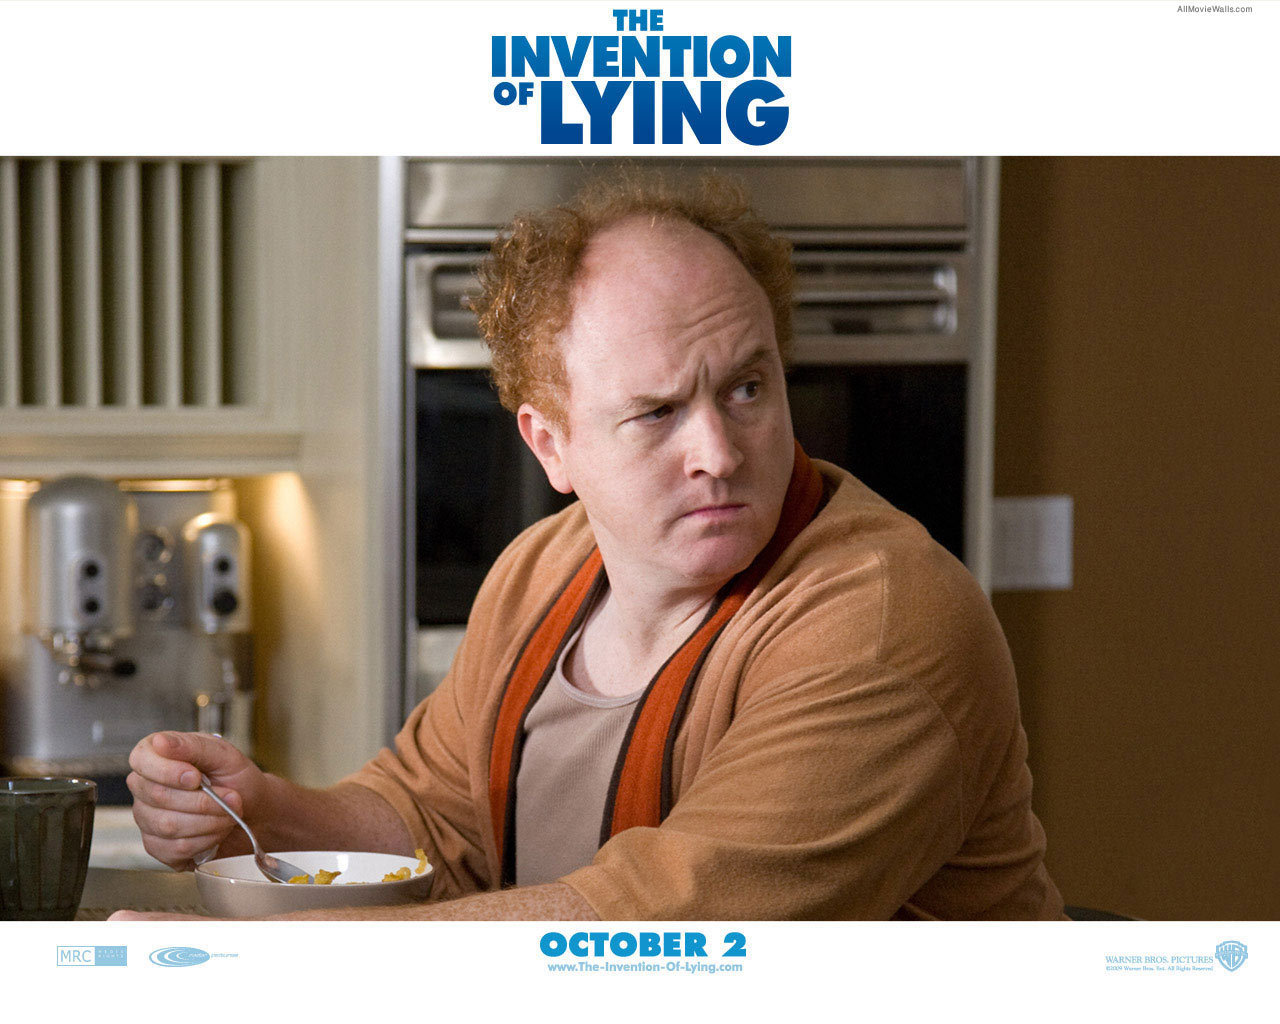 The Invention of Lying - Movies Wallpaper (9132992) - Fanpop